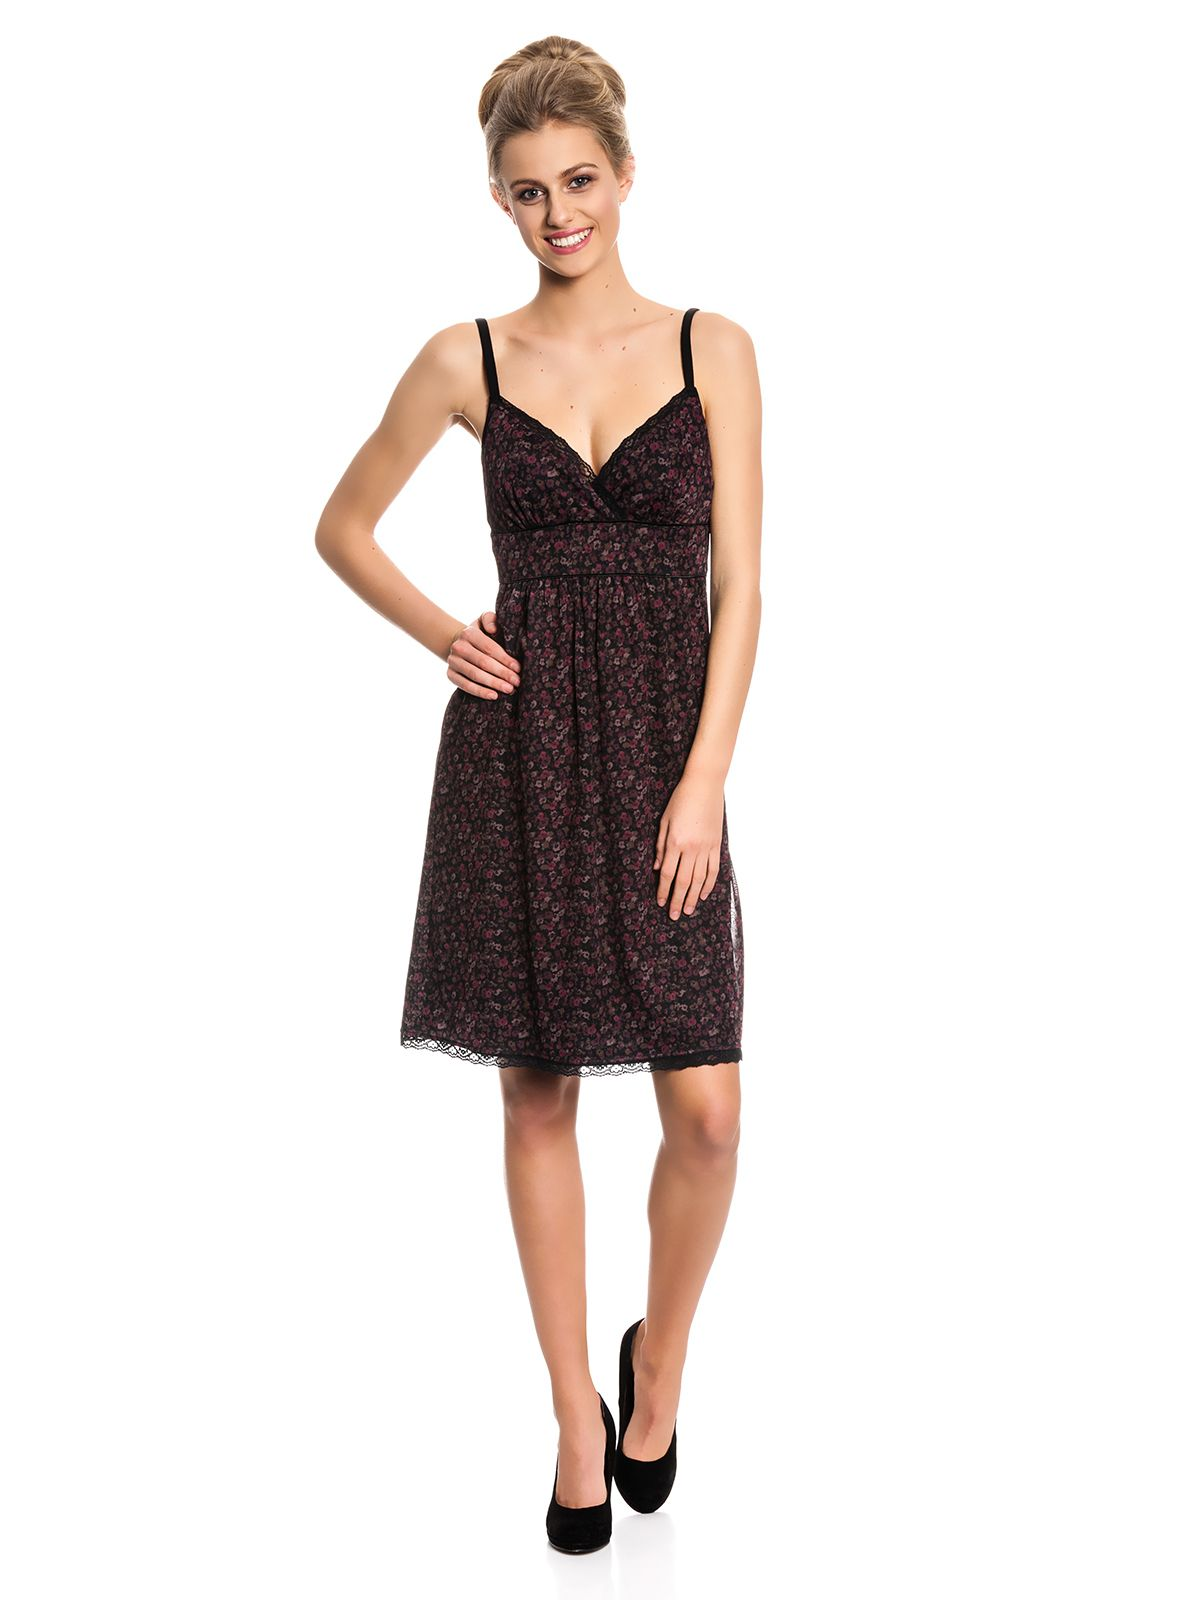 Womens Floret Mesh Pinafore Dress Vive Maria Buy Best Pay With Visa Cheap Price epyEClNsQ